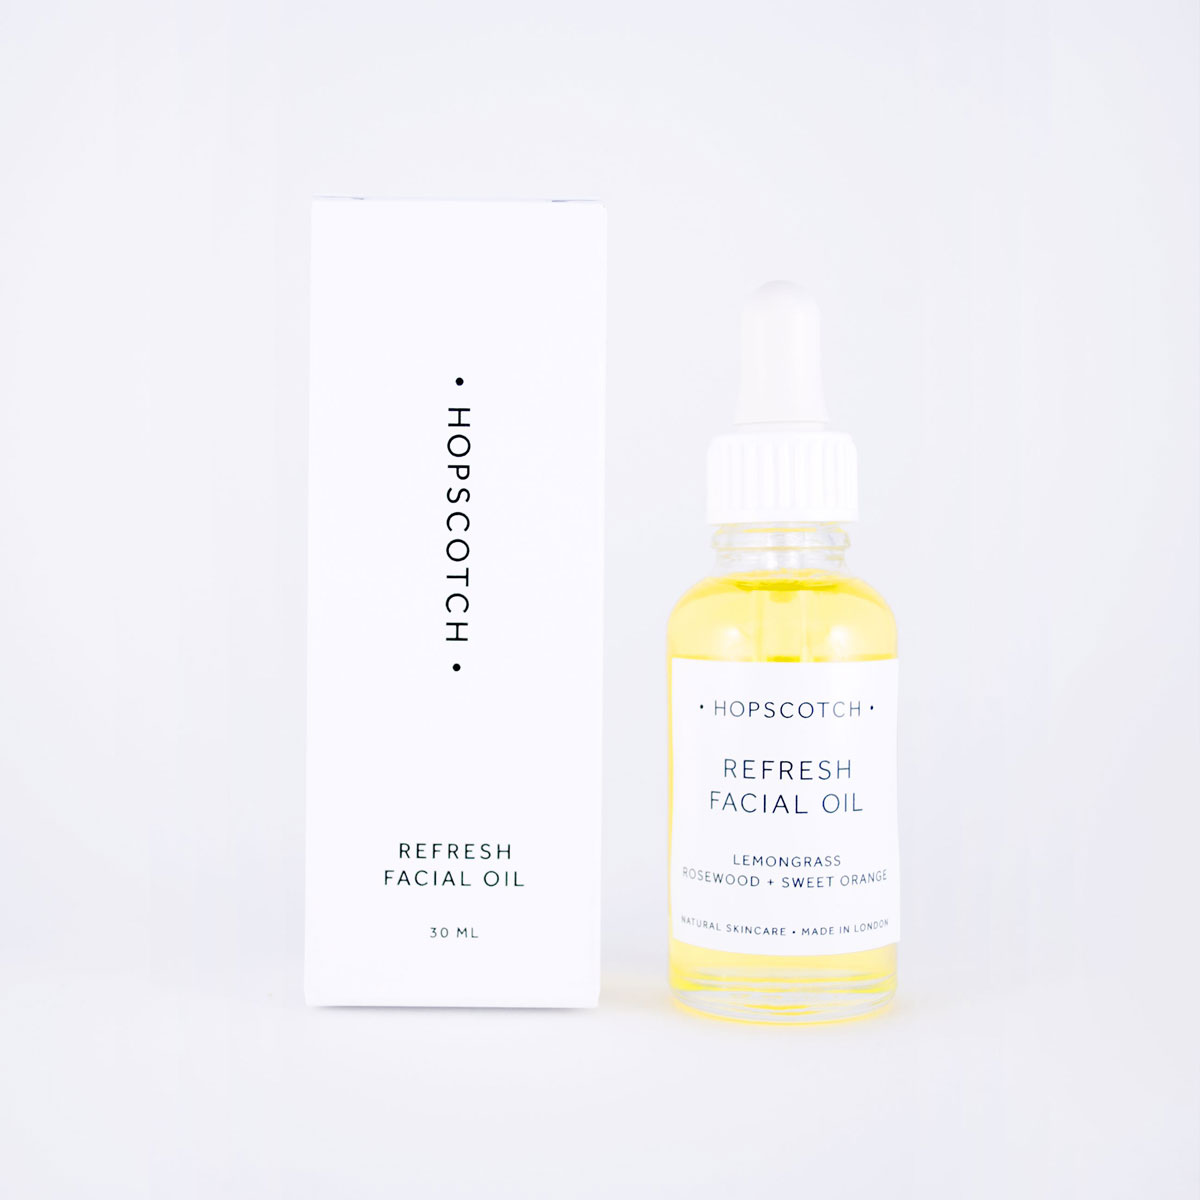 hopscotch refresh facial oil